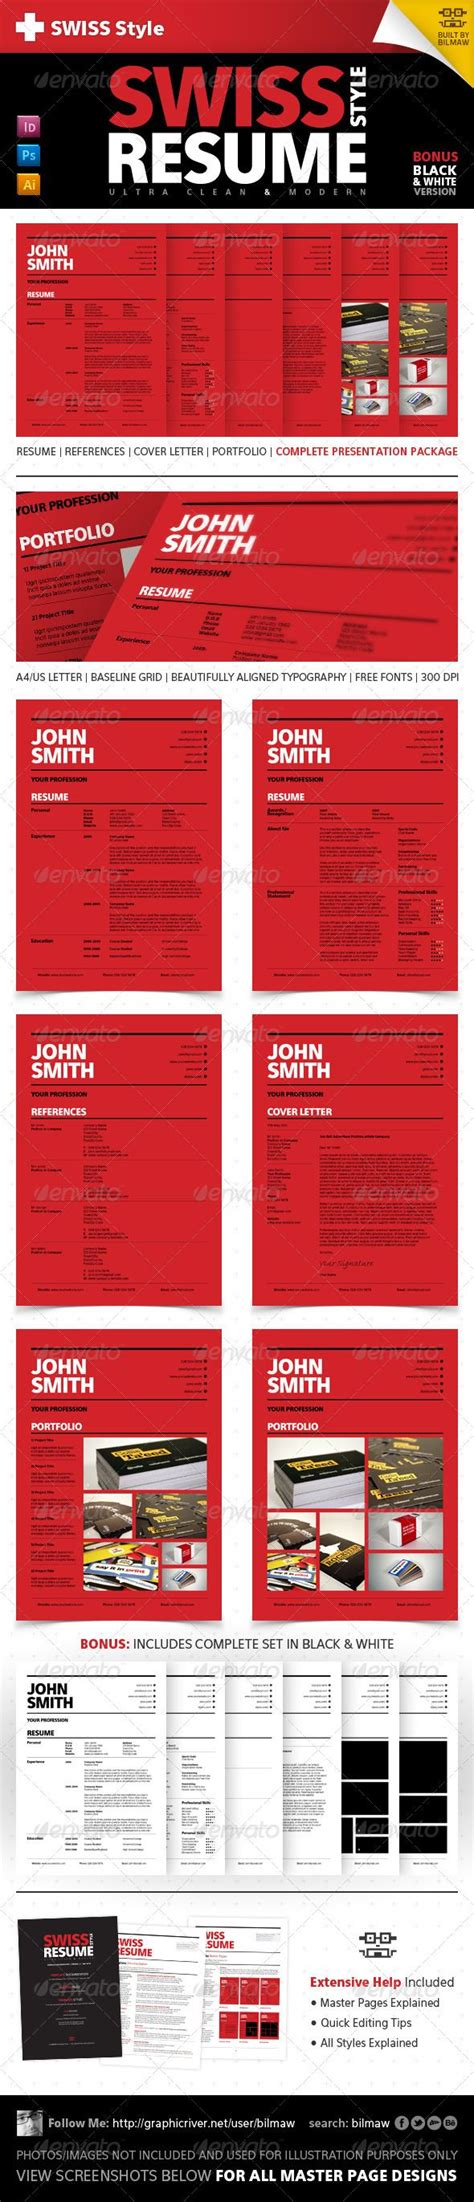 cv layout switzerland 17 best images about resume templates on pinterest